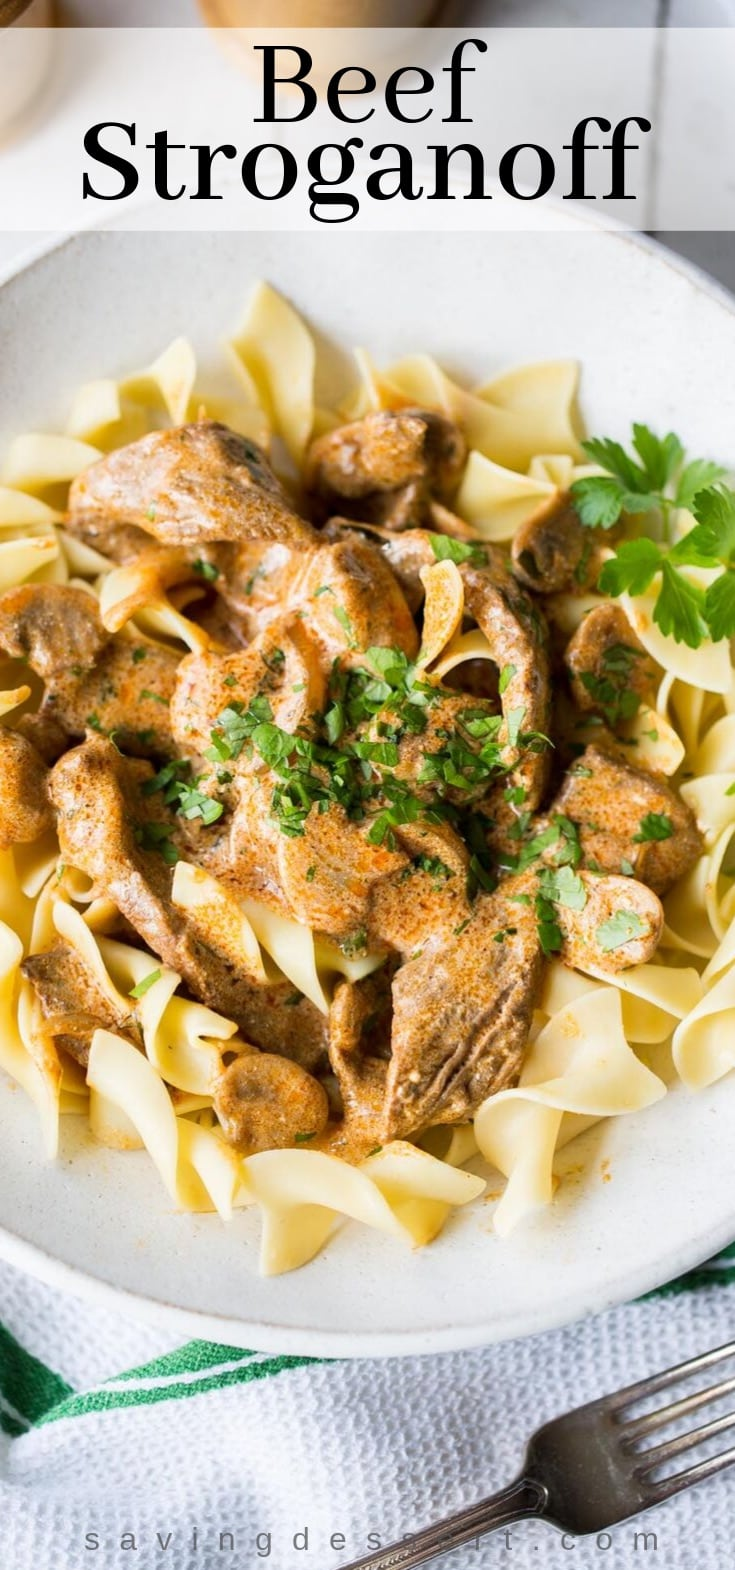 A bowl of beef stroganoff over noodles